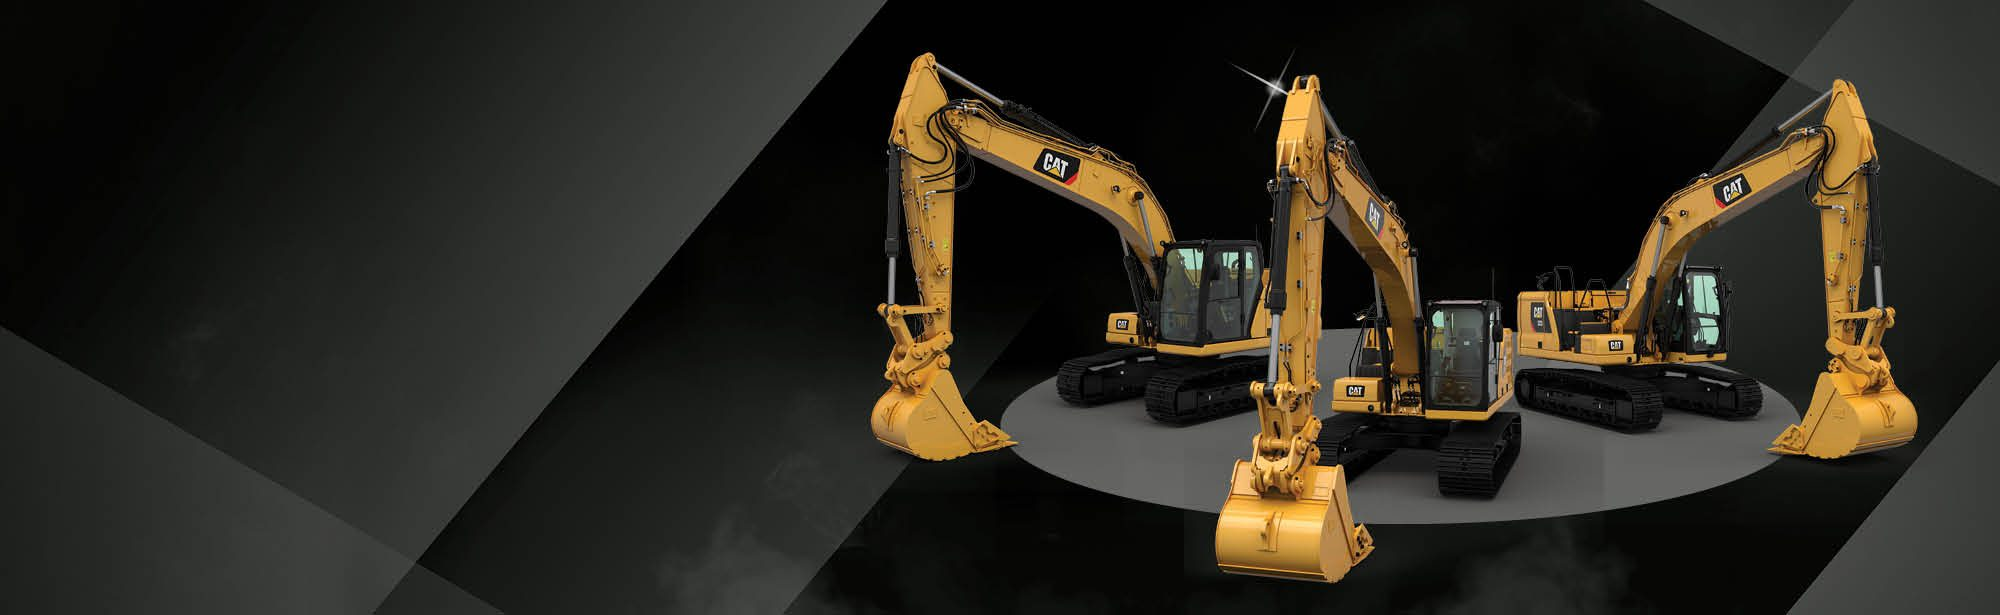 MORE CHOICES. MORE CONFIDENCE. Next Generation Excavators